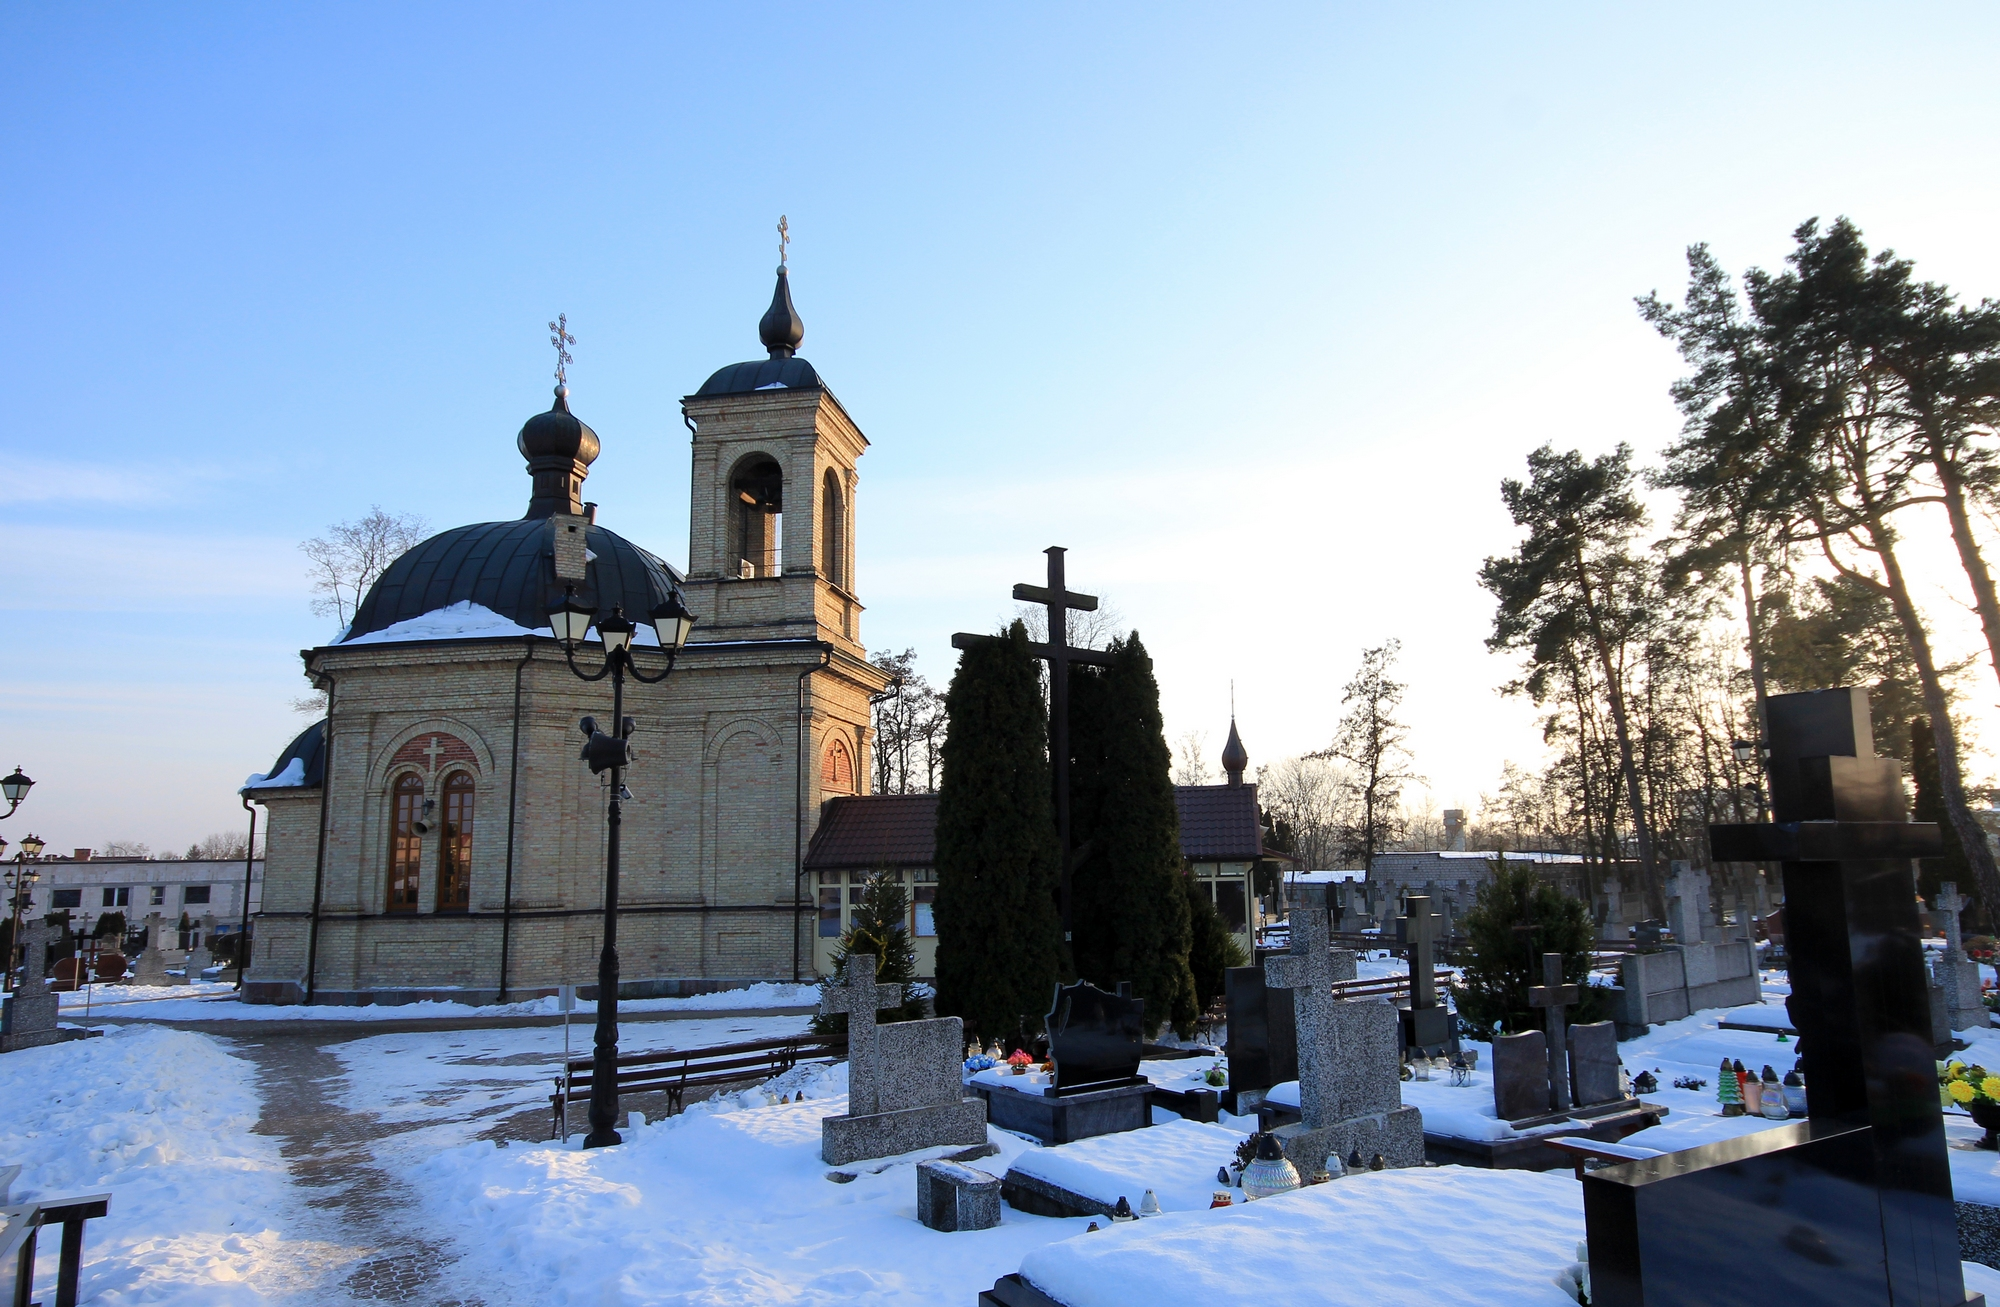 All-Saints Orthodox church in Białystok